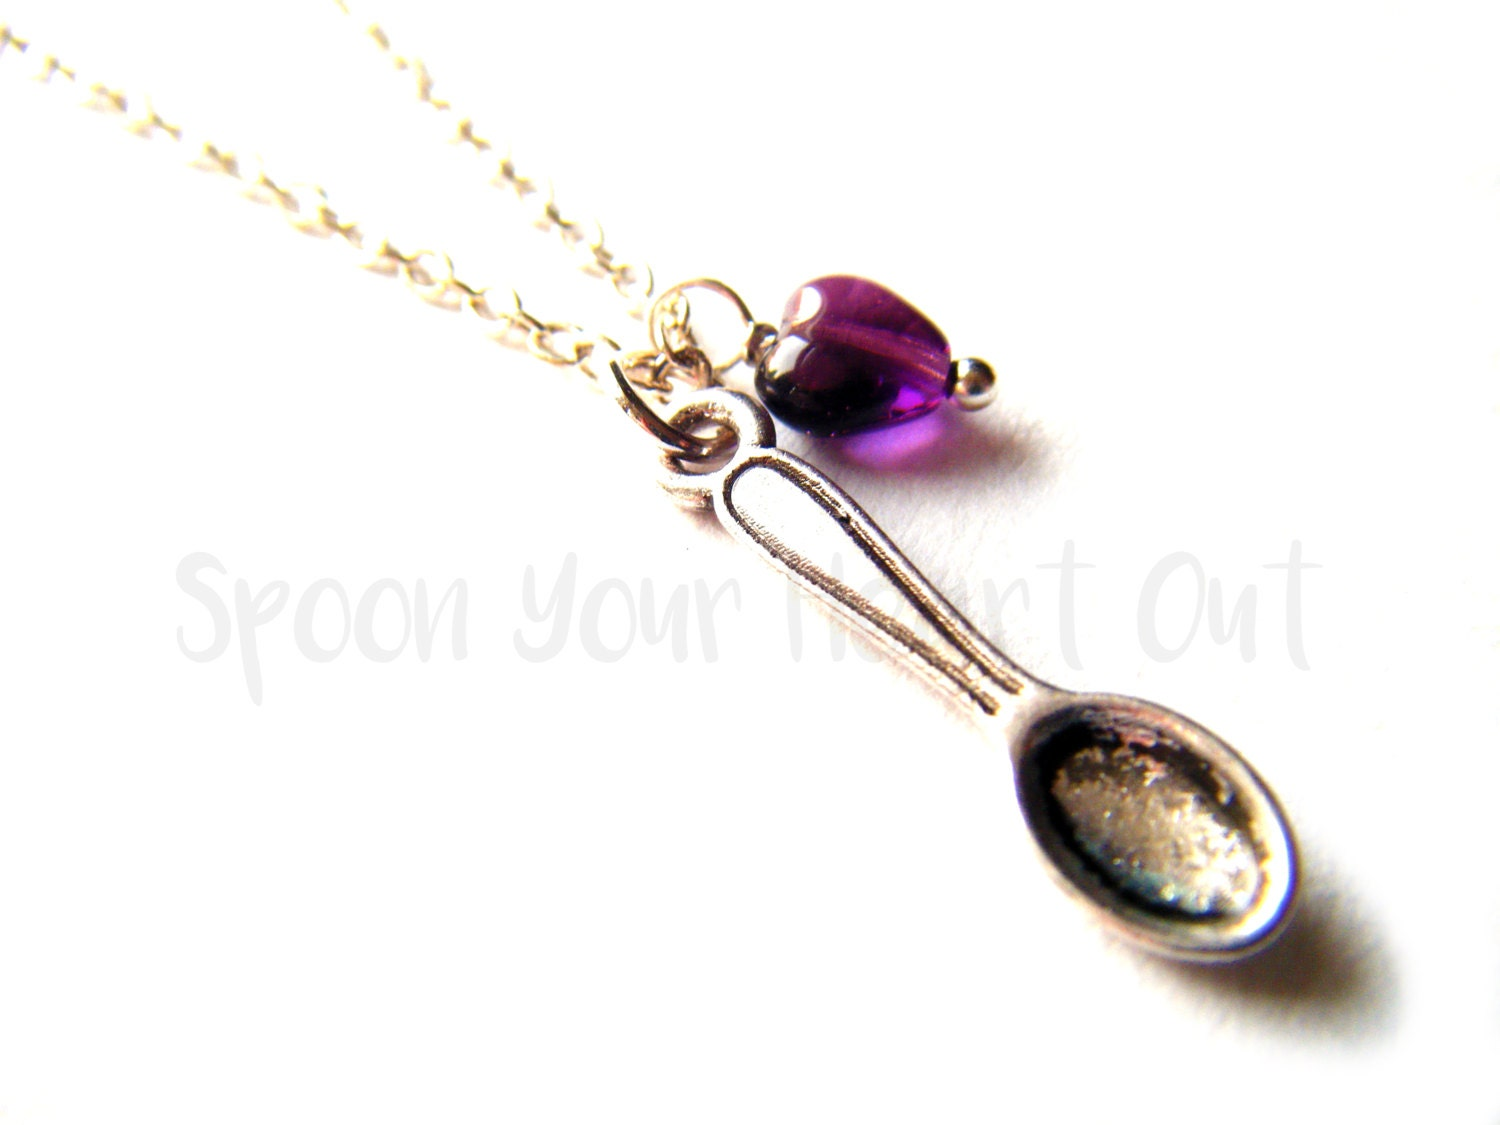 Spare Spoon Necklace  Spoon  Heart Purple Amethyst FibromyalgiaLupus ( more!) Awareness Necklace  Spoonie Necklace  Spoon Theory